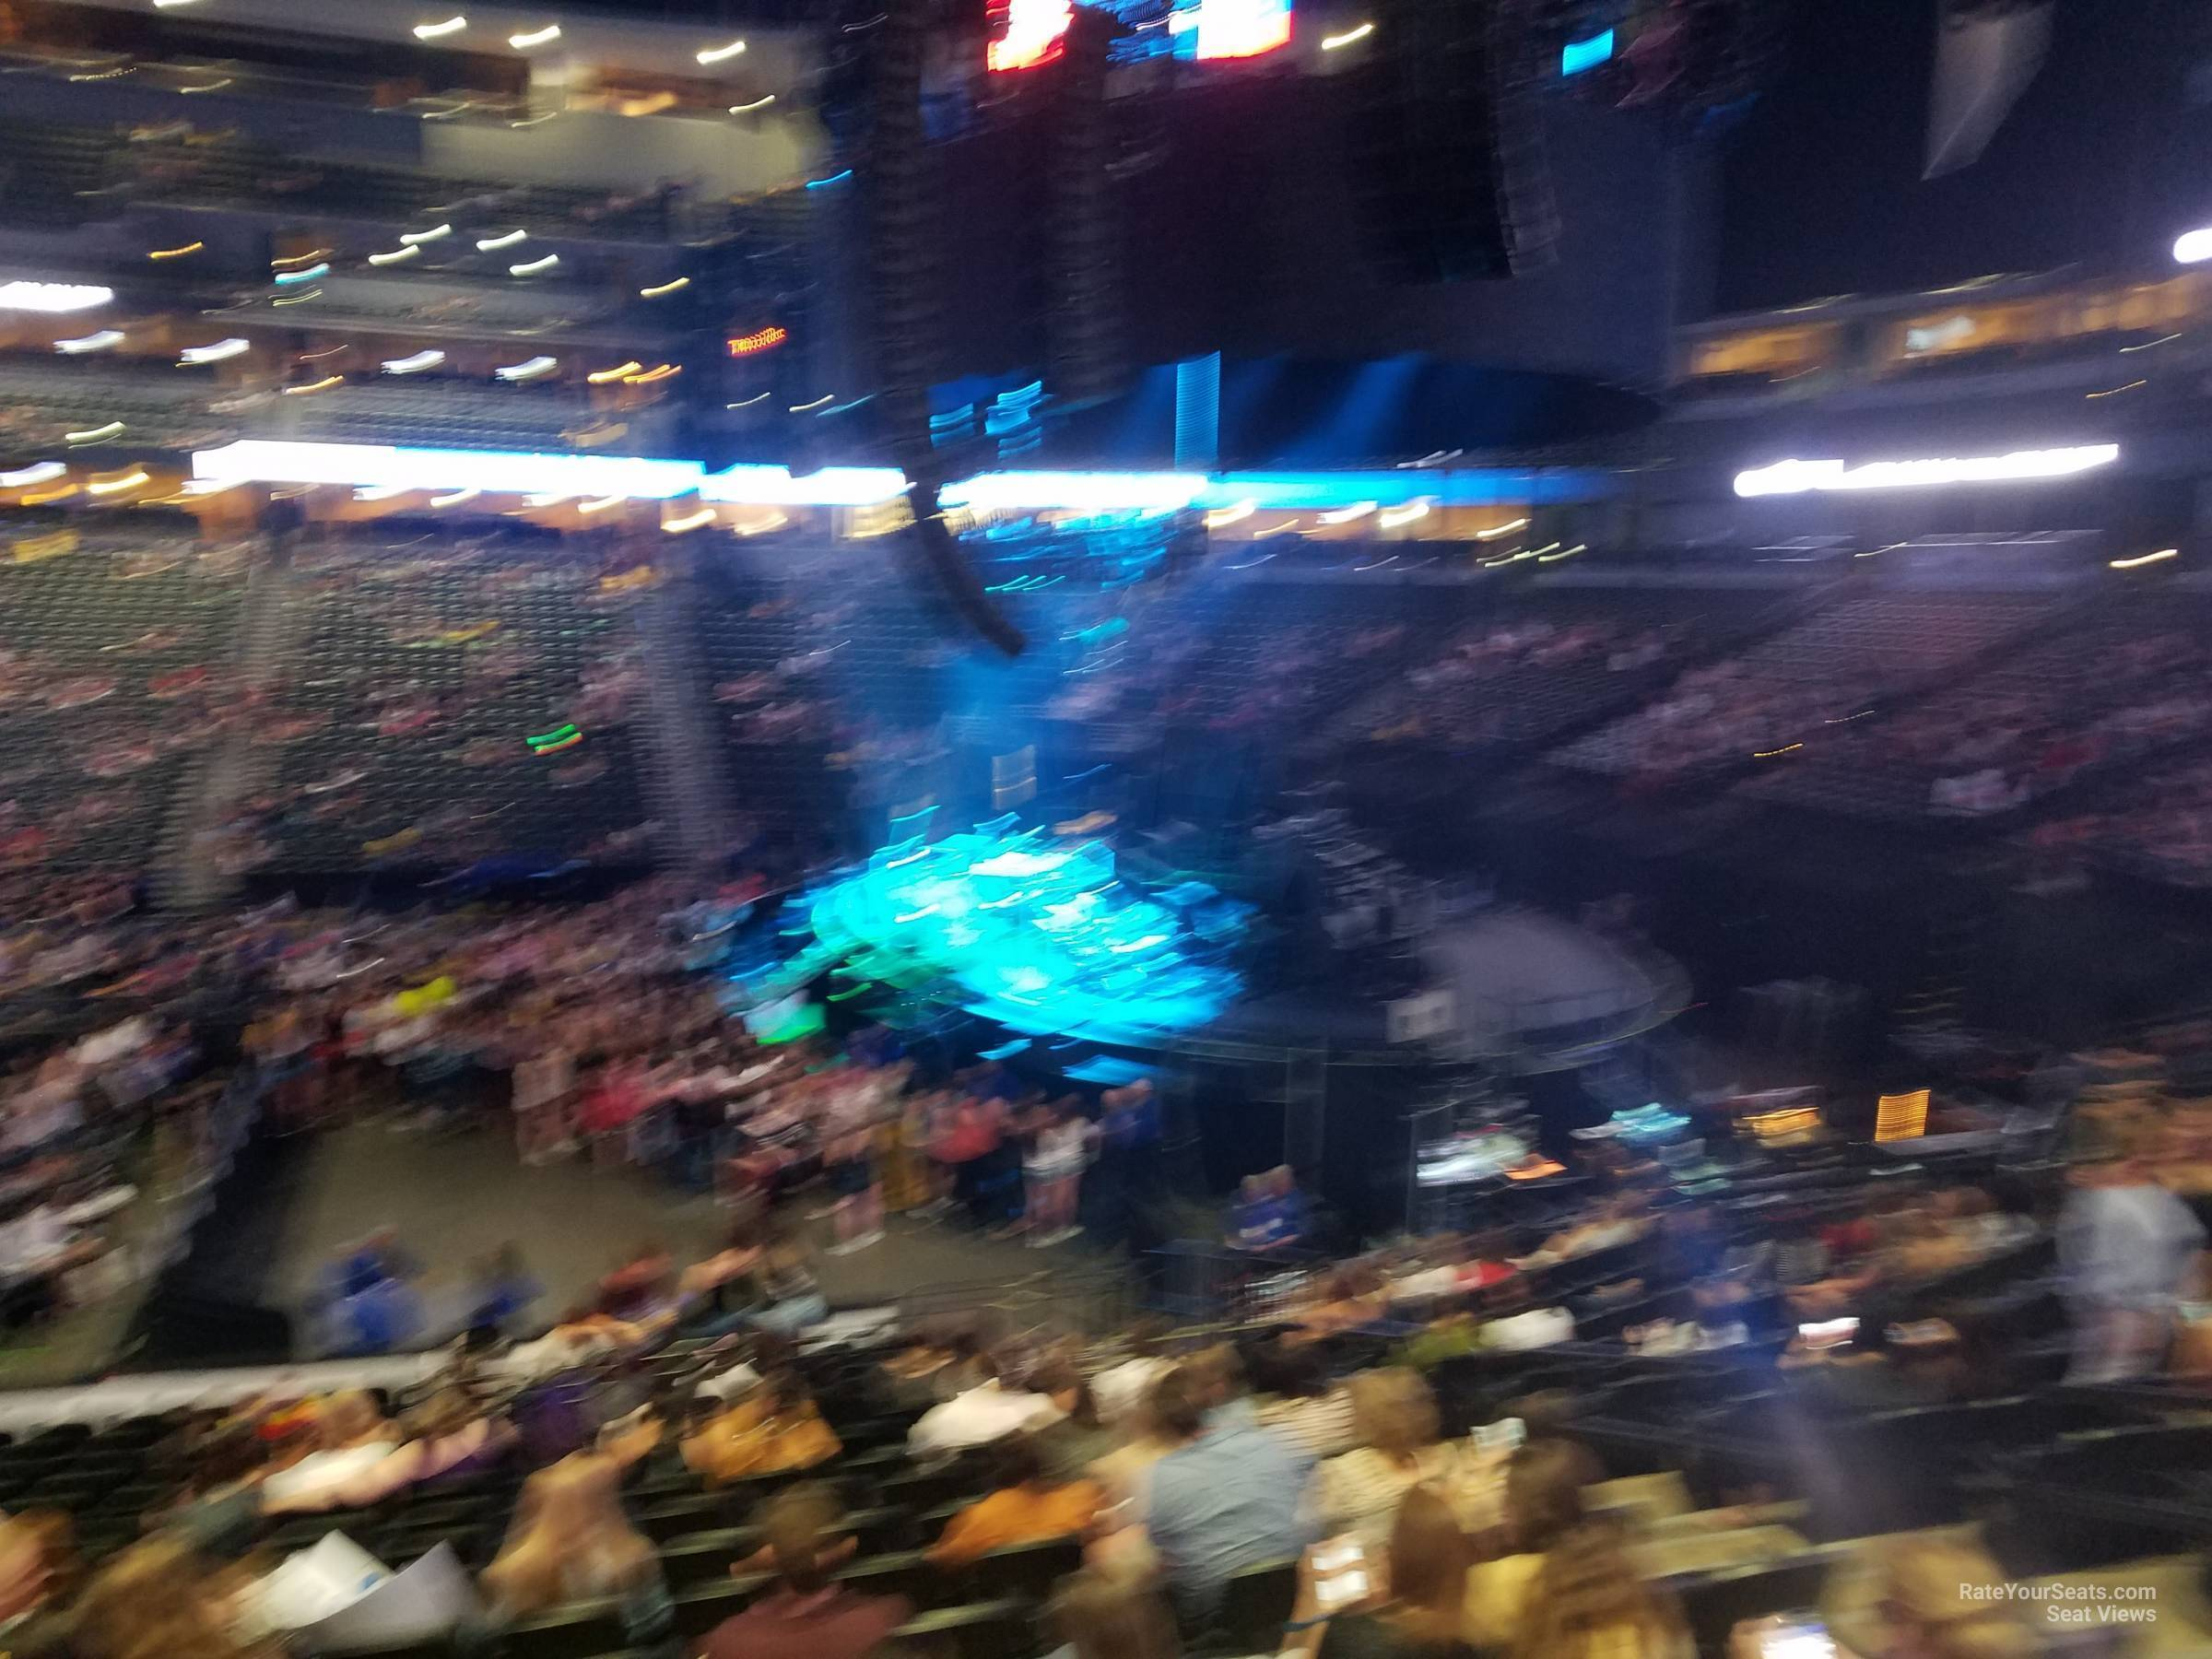 Section 146 At Pepsi Center For Concerts Rateyourseats Com